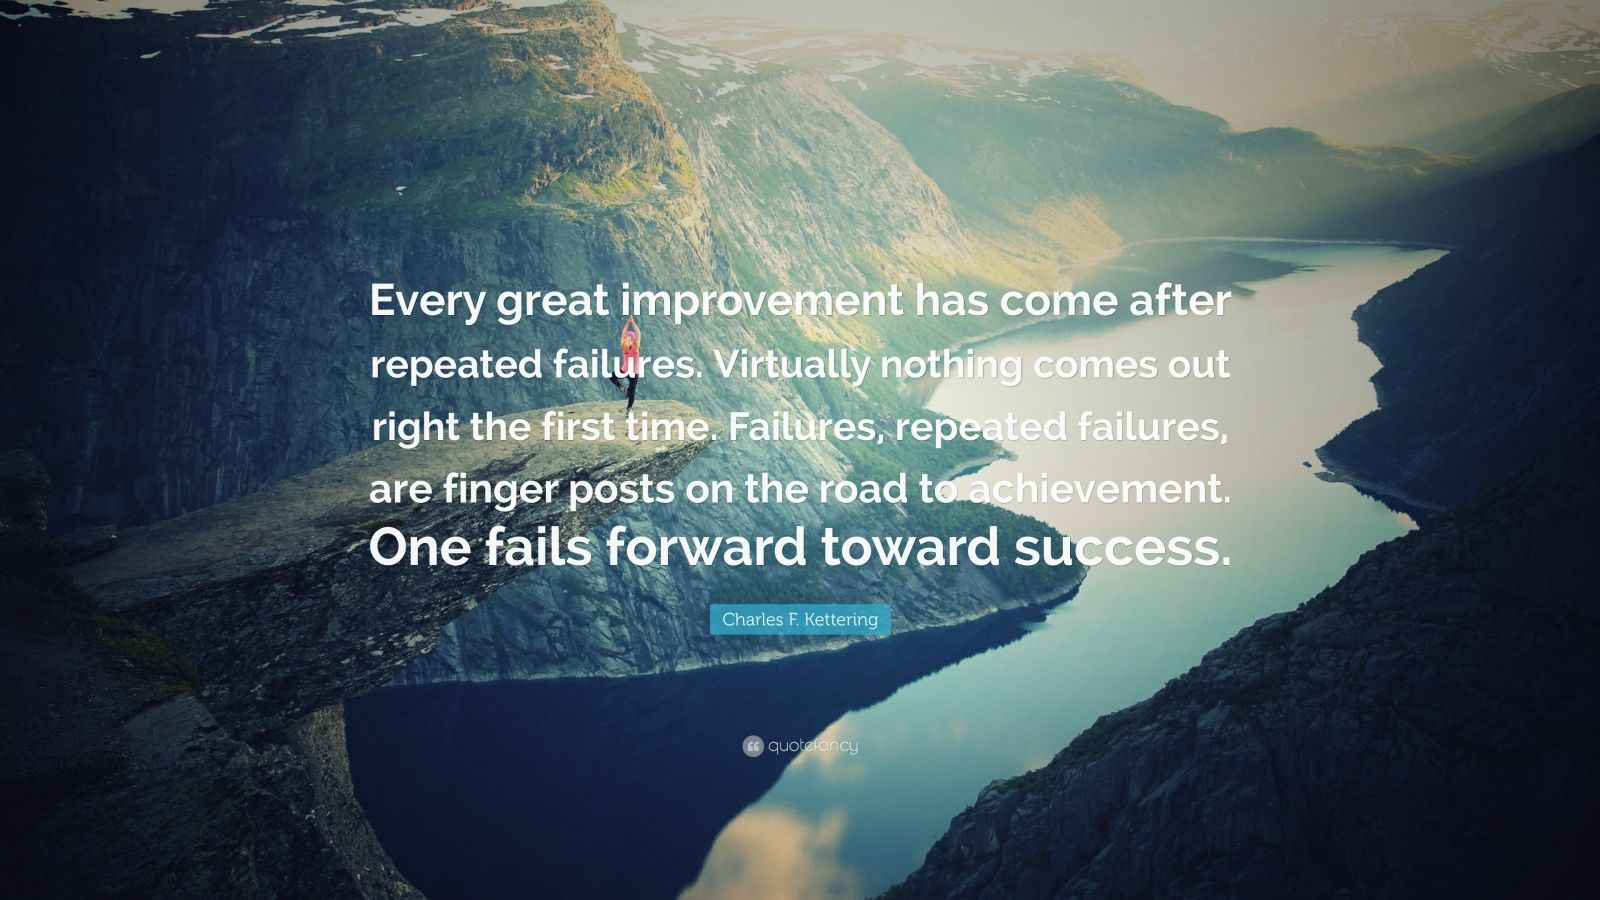 "Charles F. Kettering Quote: ""Every great improvement has come after repeated failures. Virtually nothing comes out right the first time. Failures, repeated failures, are finger posts on the road to achievement. One fails forward toward success."""